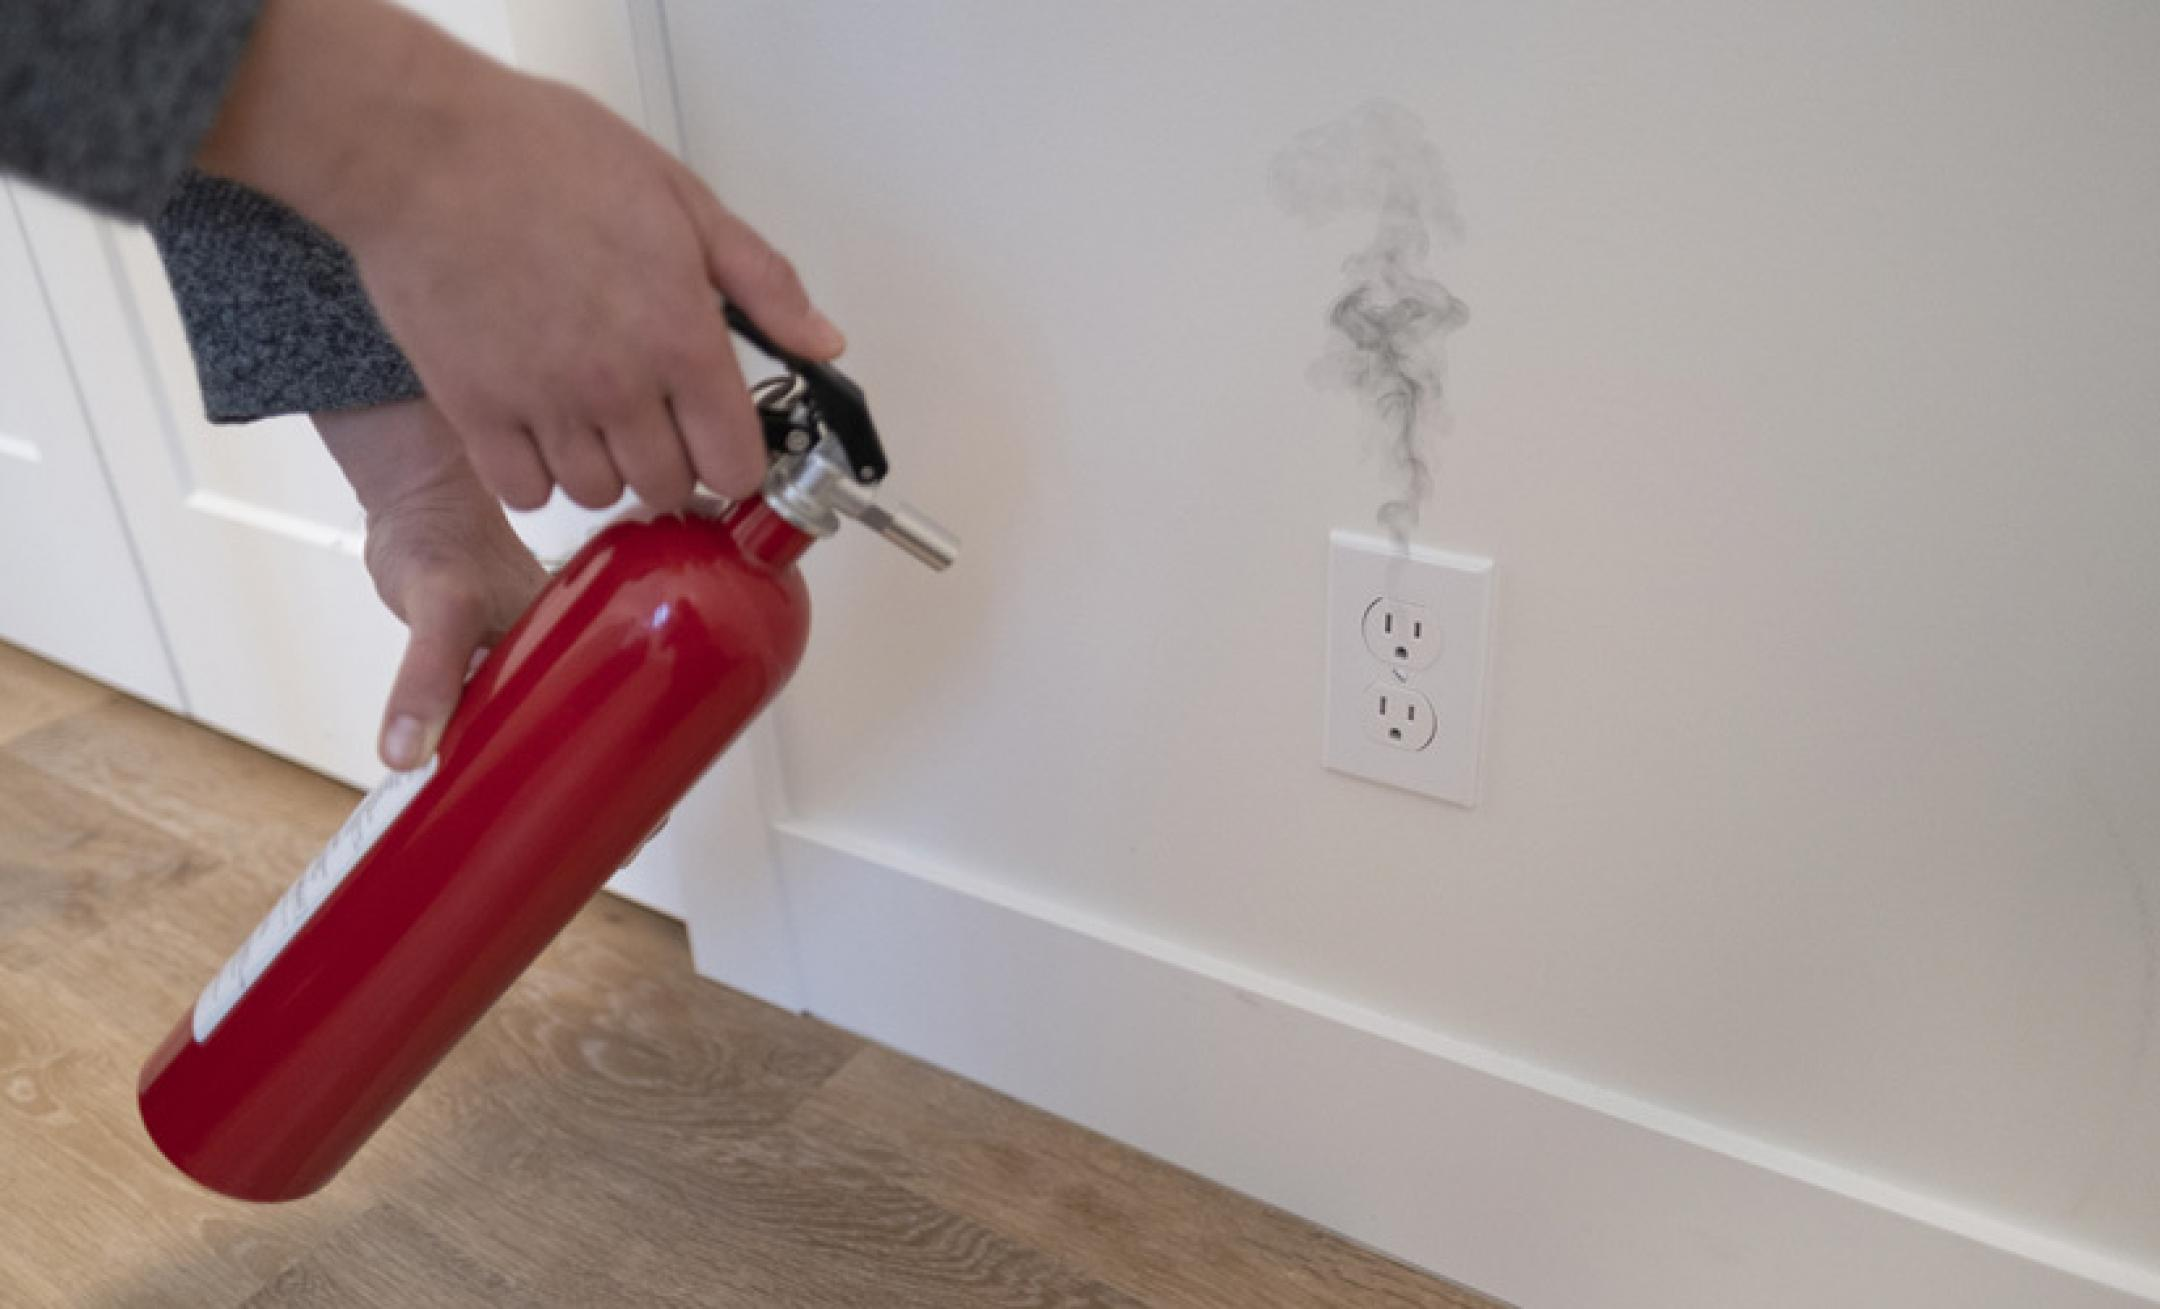 How to Fix a Smoking Electrical Outlet